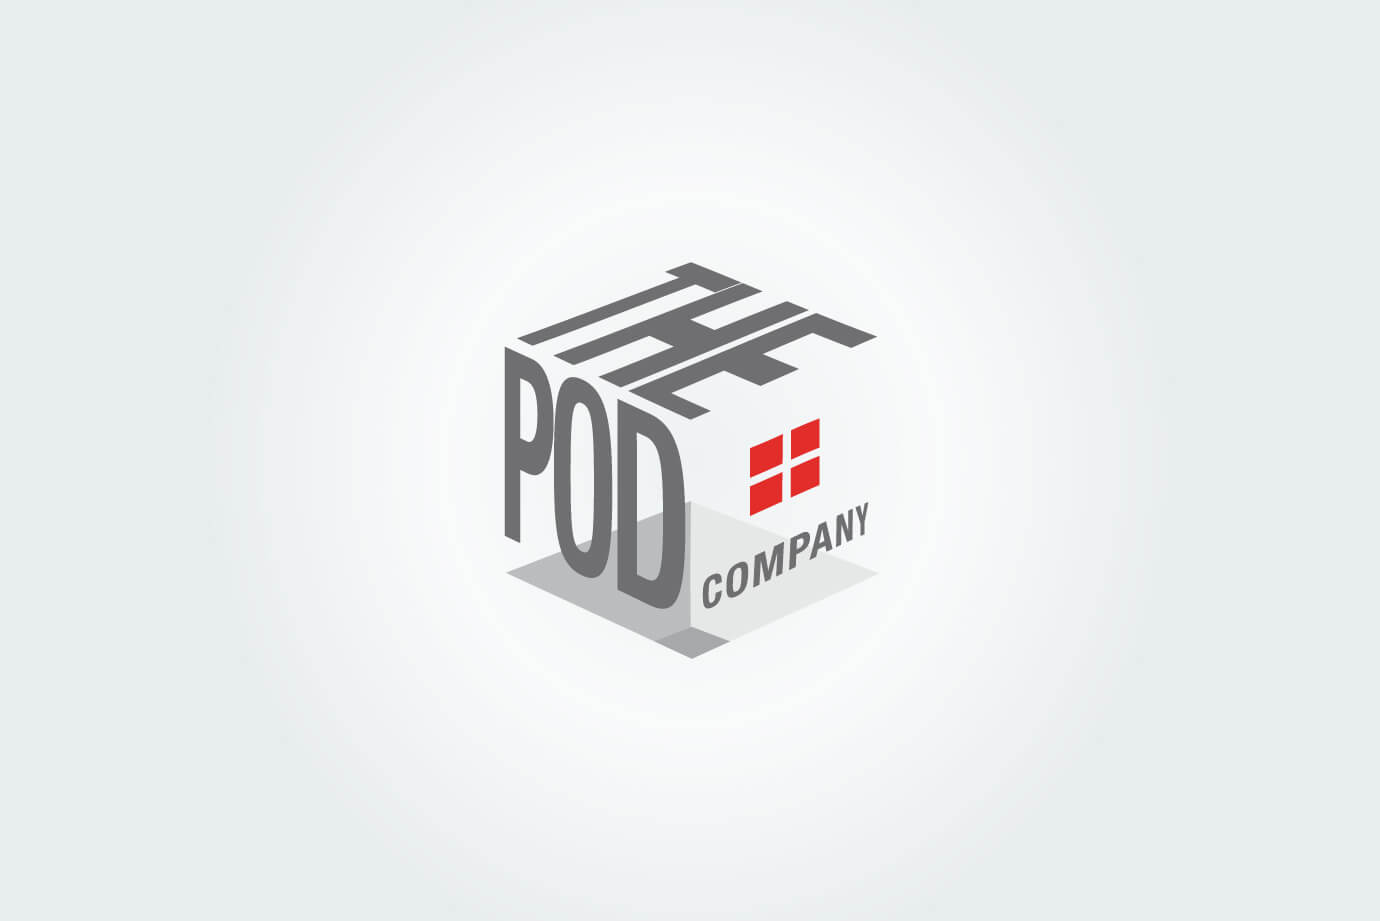 The Pod Company Logo Designed by Freelance Logo Designer